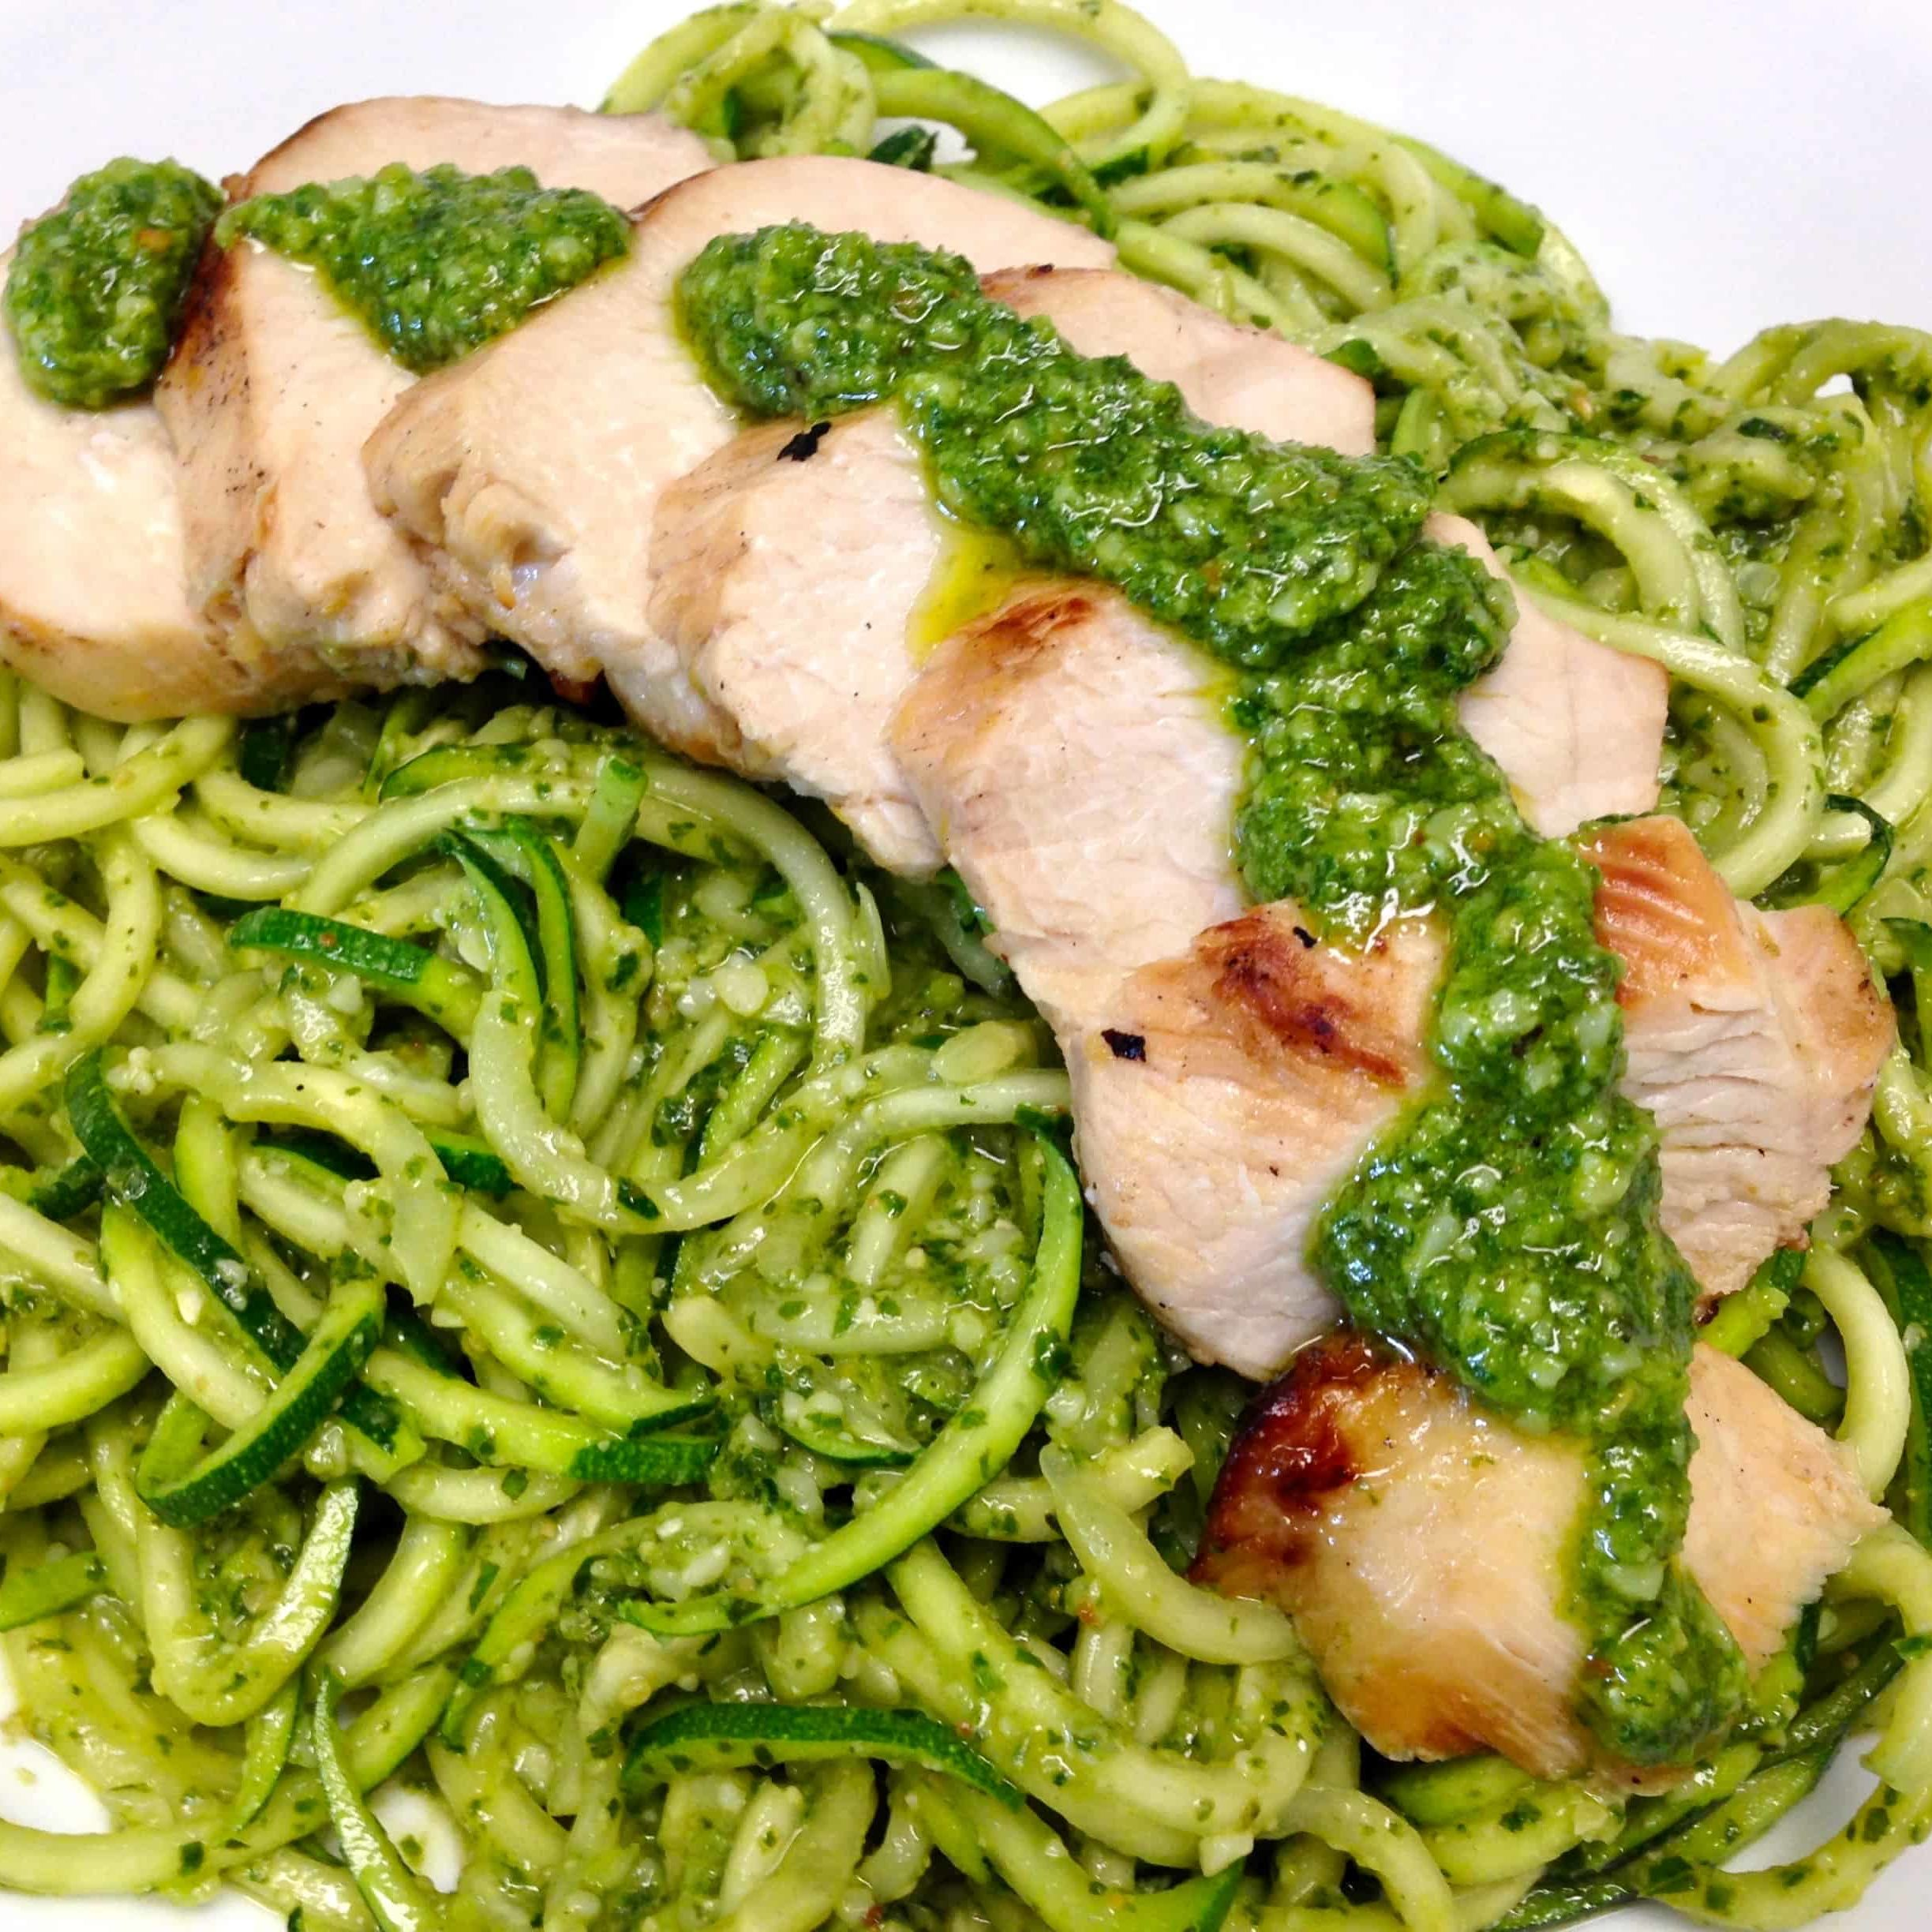 zucchini noodles with pesto sauce and sliced grilled chicken over the top